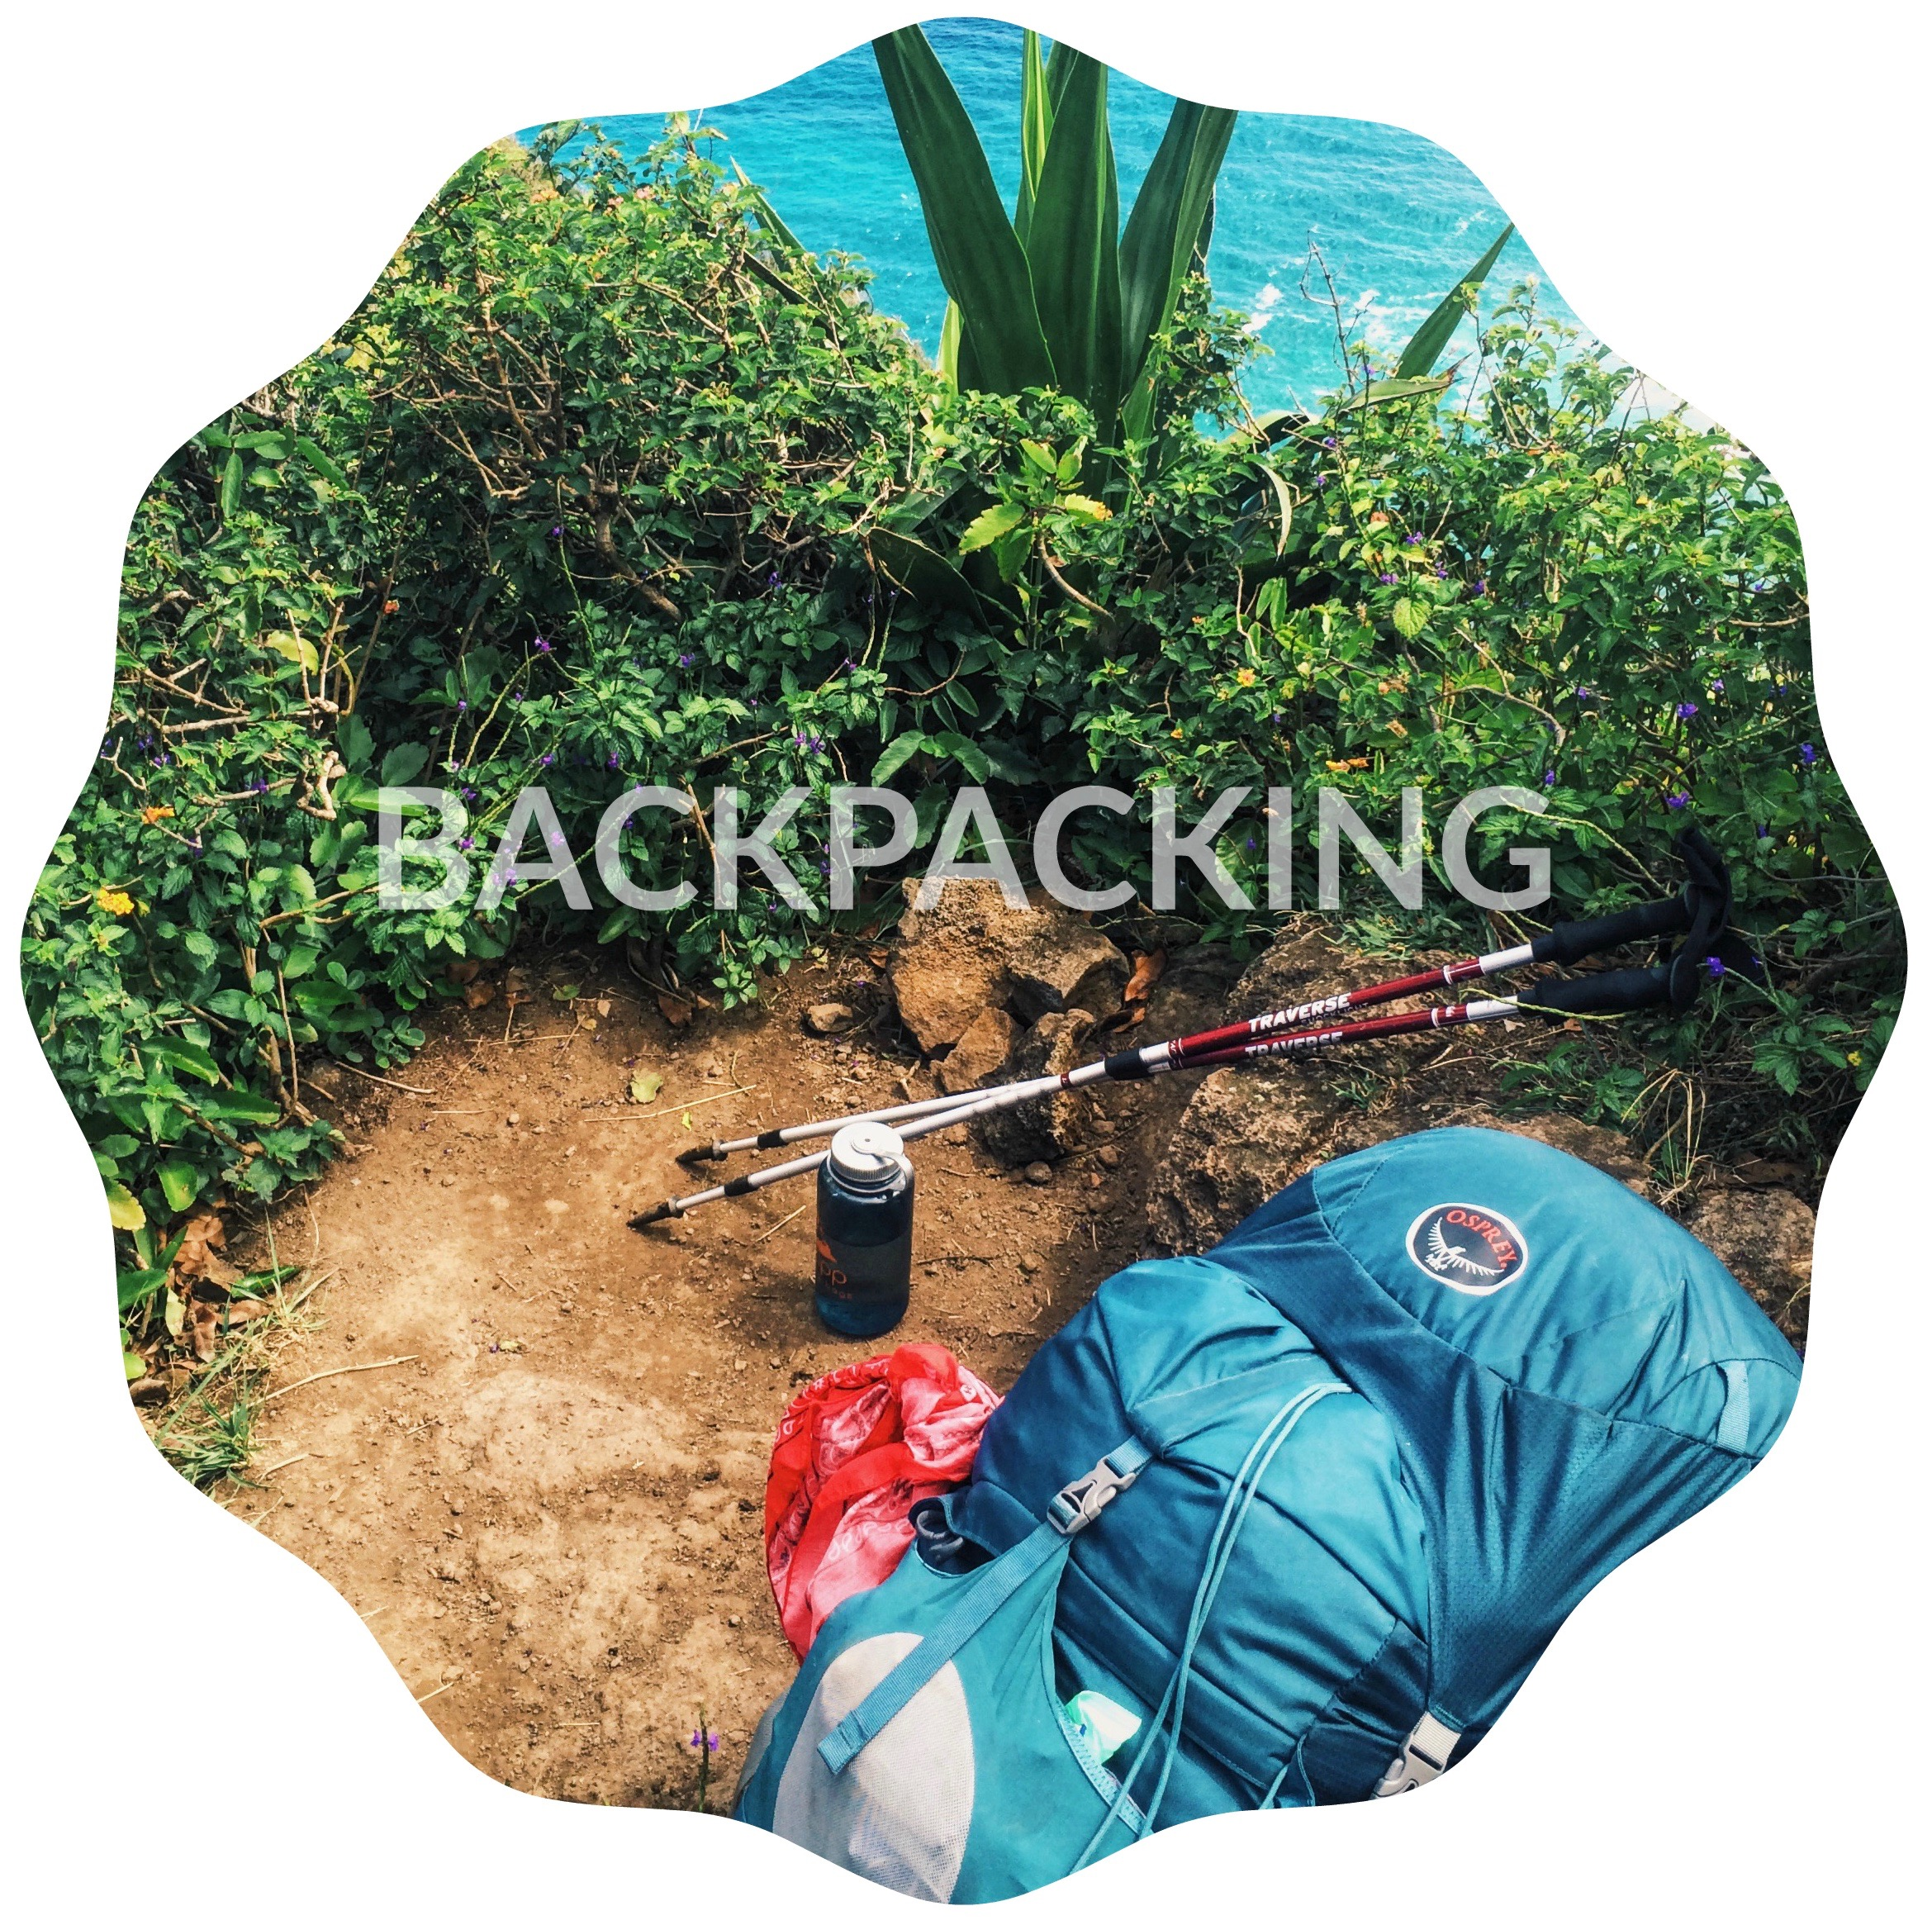 backpacking logo 2.jpg